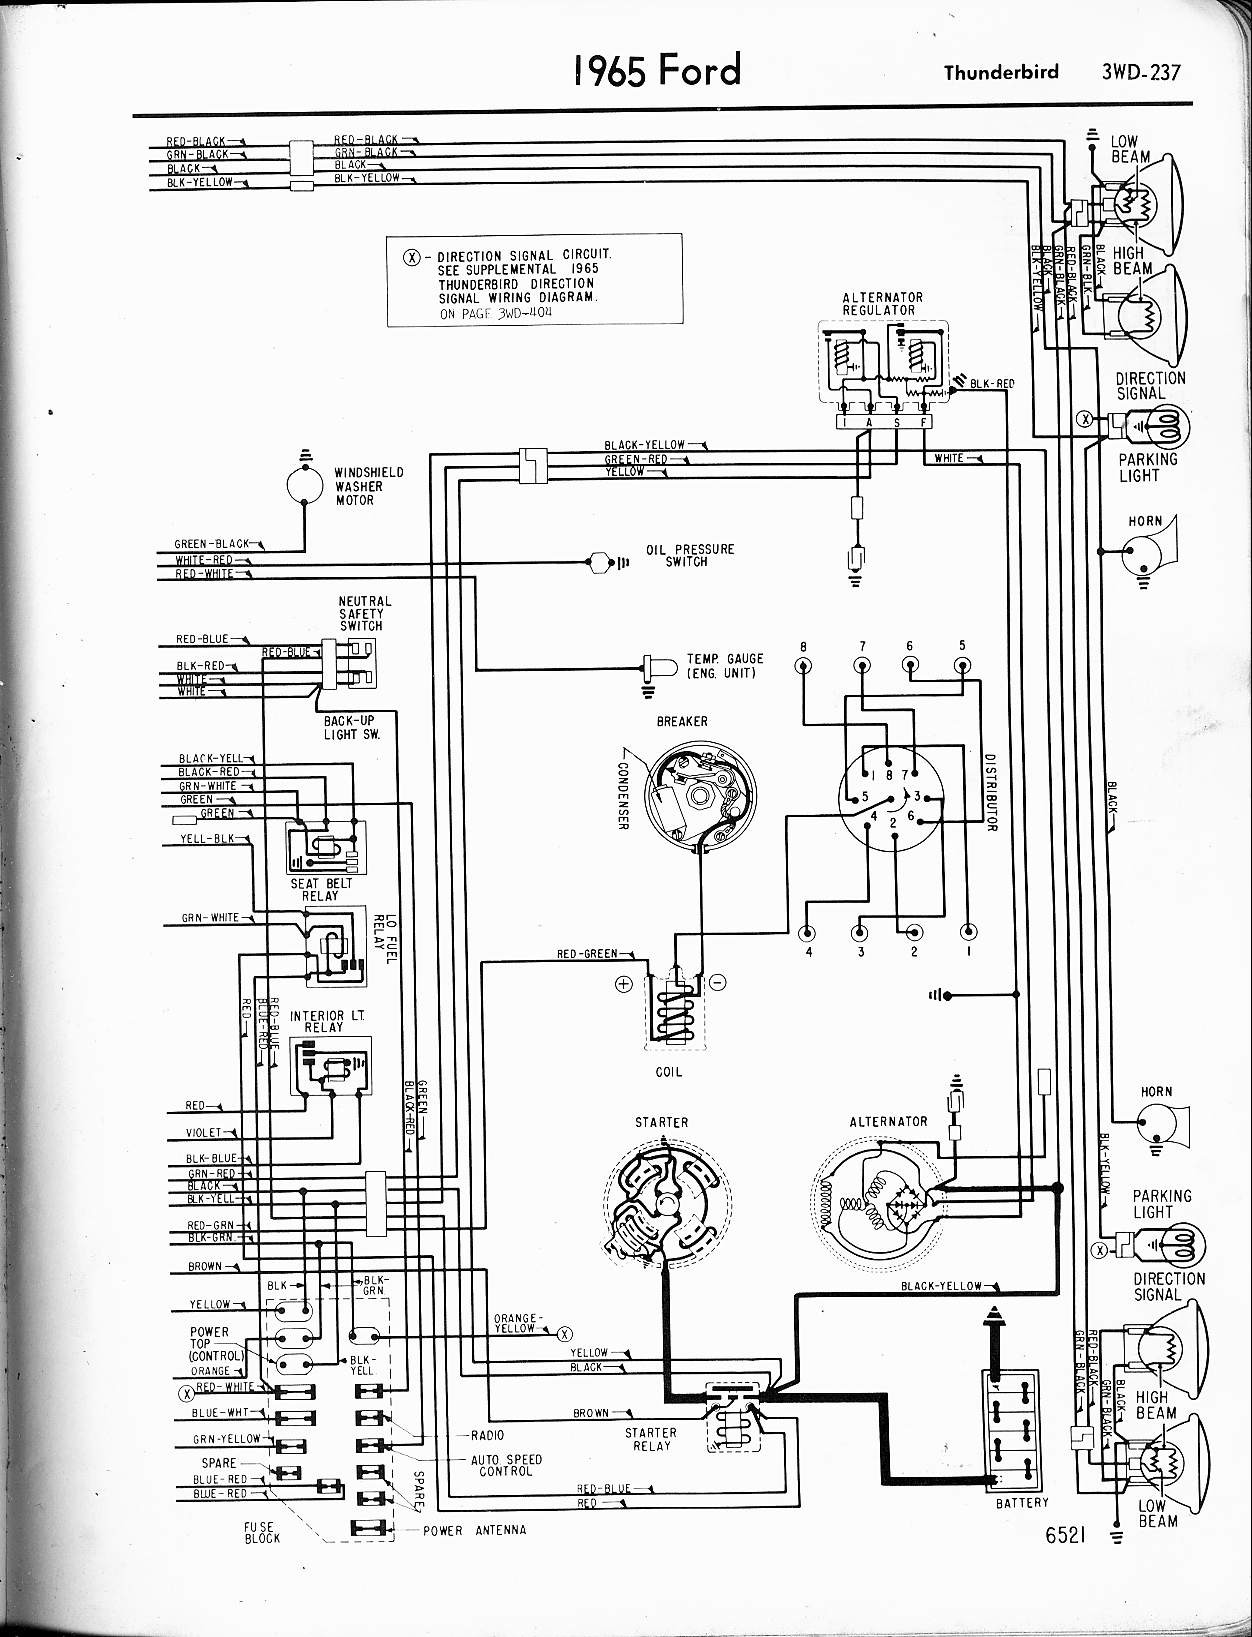 1956 ford alternator wiring diagram trusted wiring diagram u2022 rh soulmatestyle co